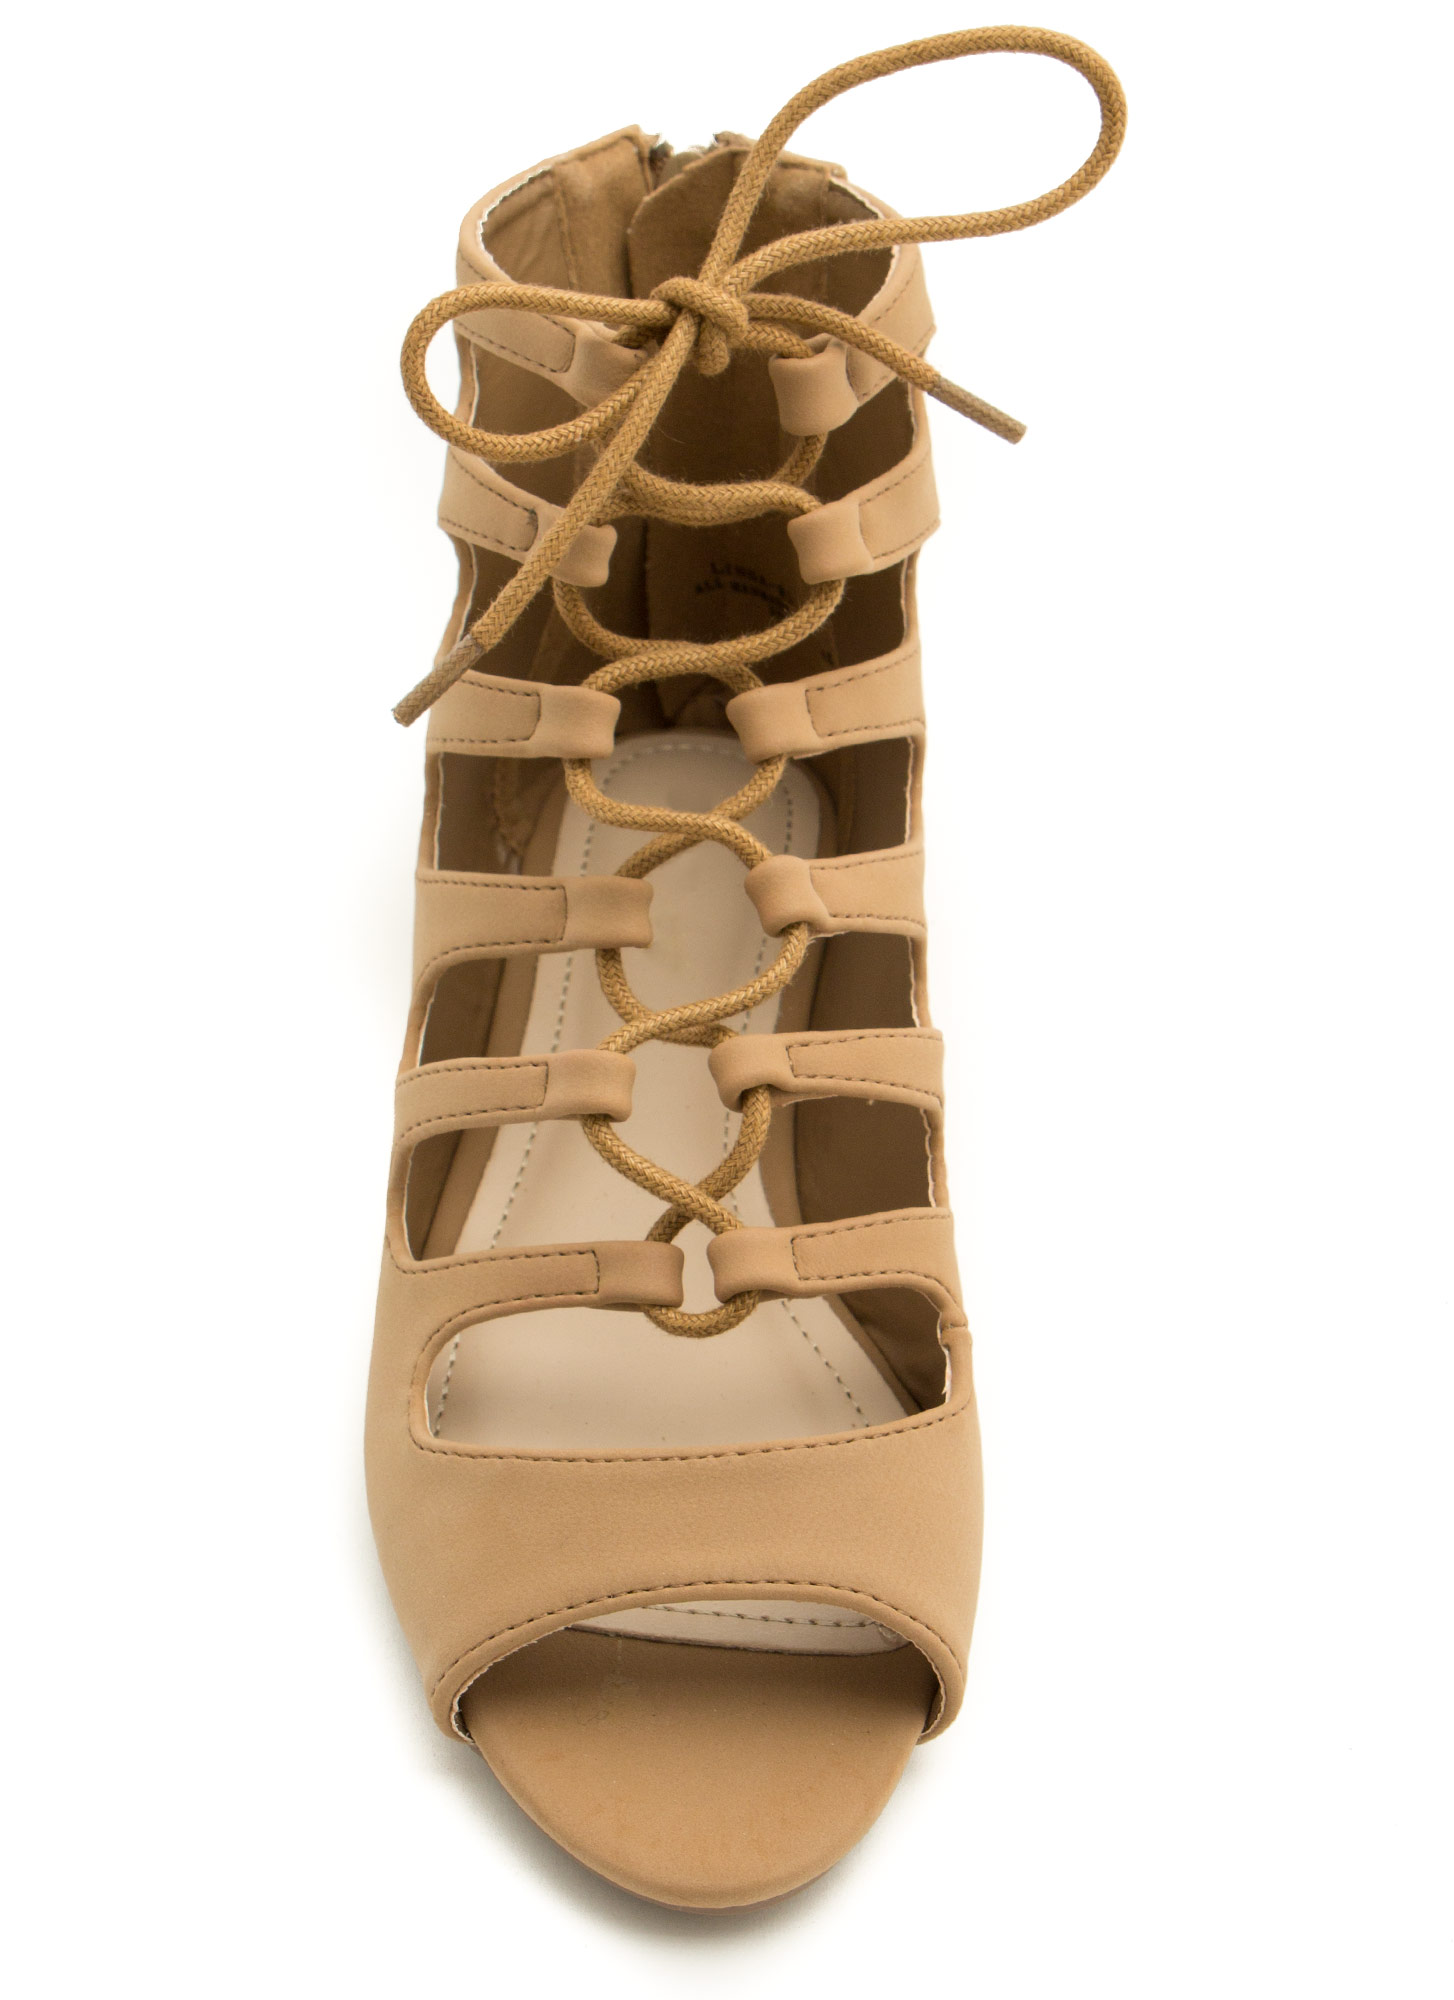 Ankle Biters Laced Cut-Out Sandals NATURAL